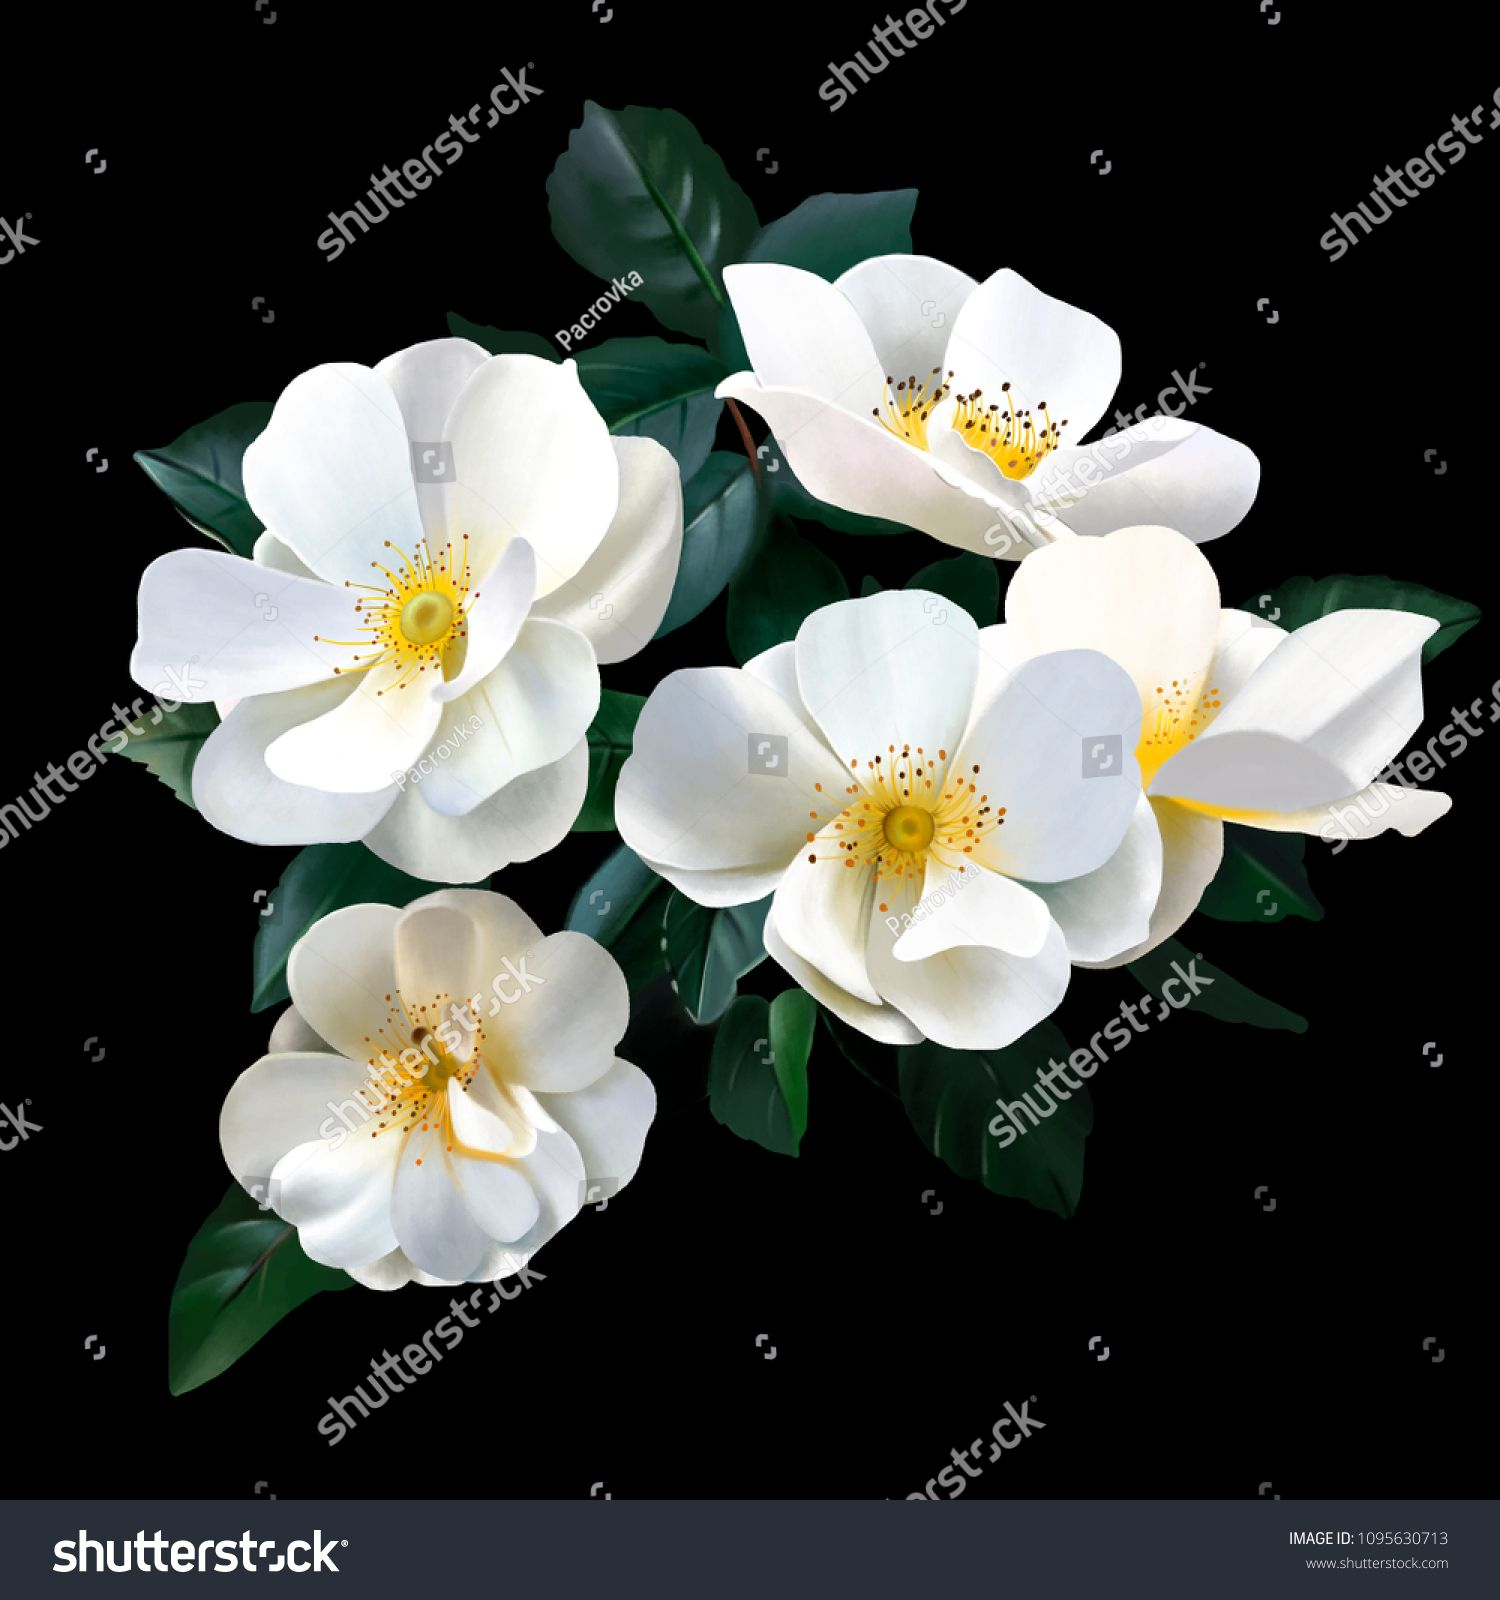 A bouquet of luxurious white roses on a black background rose is a